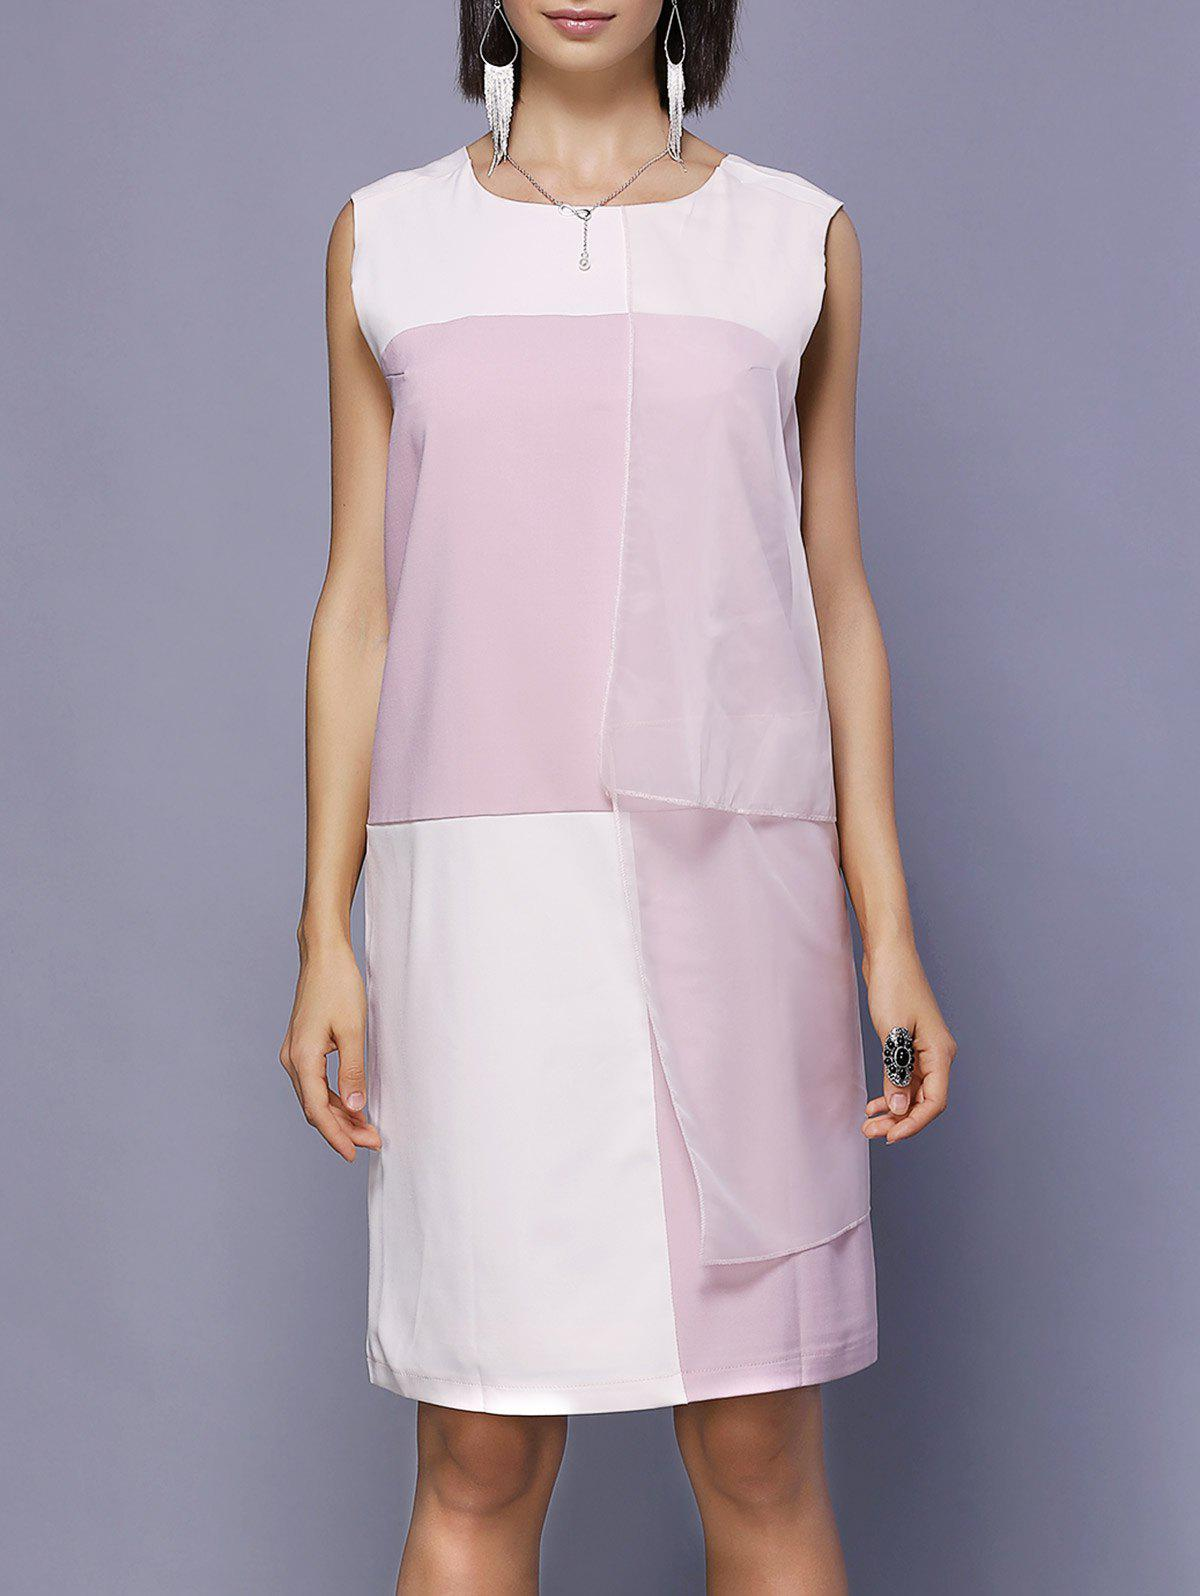 Color Block Chiffon Spliced Dress - PINK ONE SIZE(FIT SIZE XS TO M)